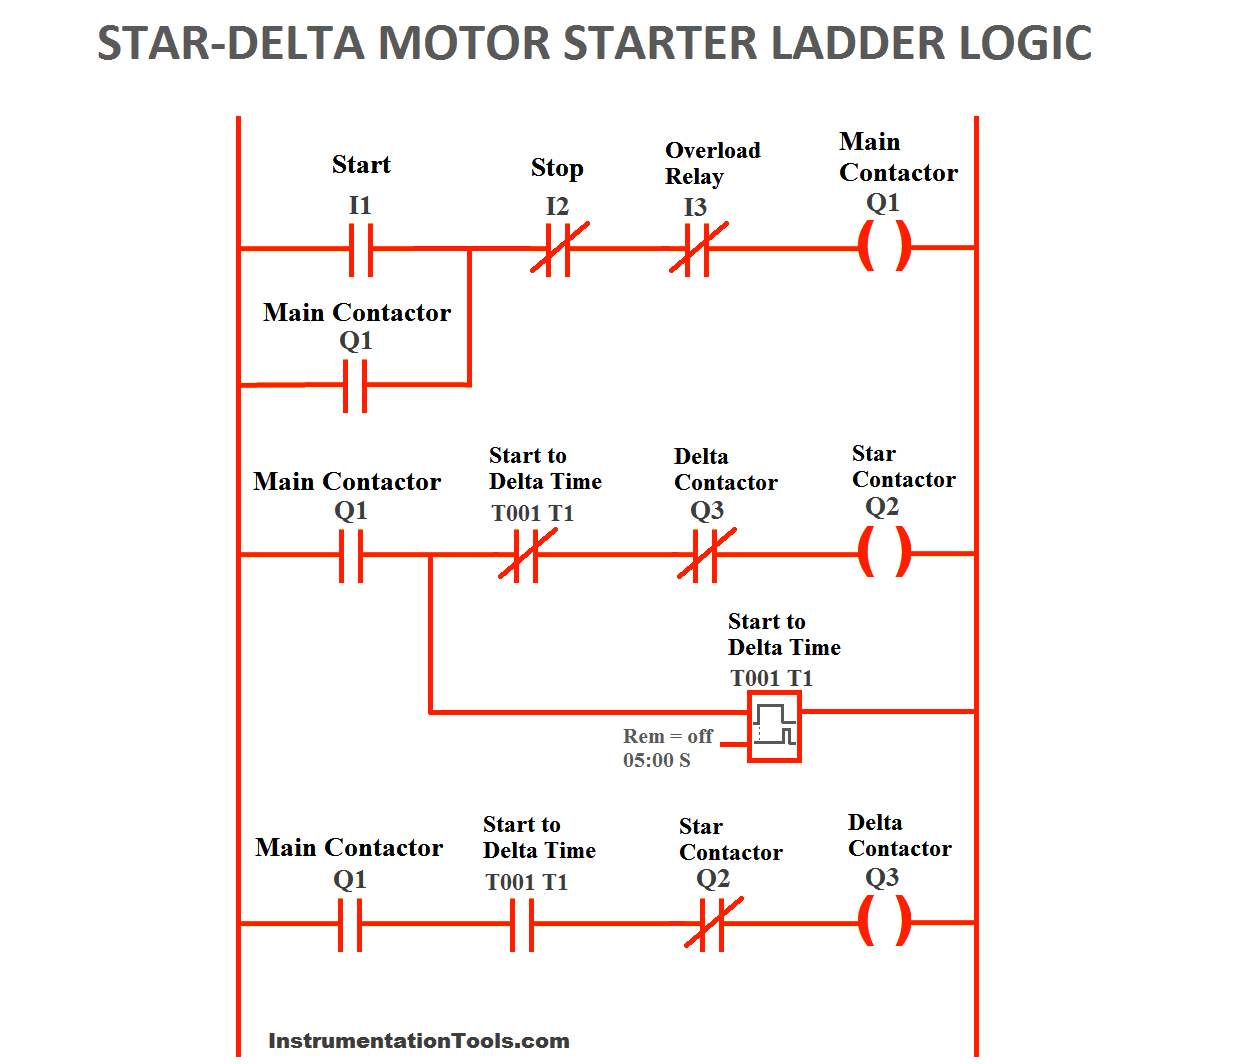 Delta Motor Connection Diagram Quick Start Guide Of Wiring Star Starter Pdf Plc Program For Ladder Logics 3 Phase